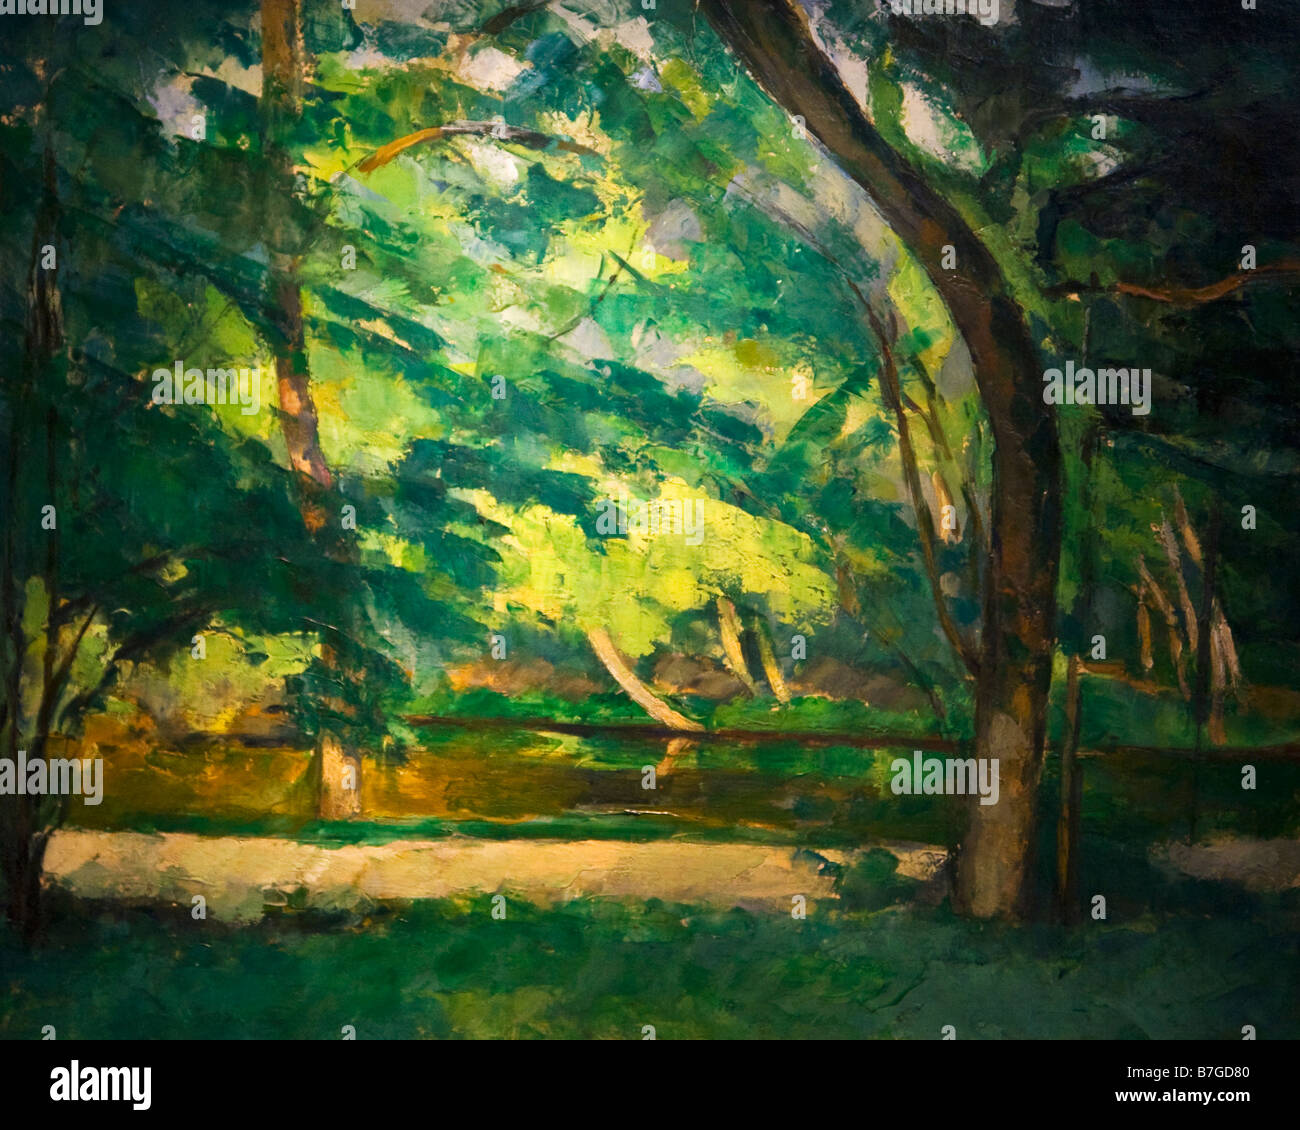 'Etang des Soeurs Osny' painted by Paul Cezanne circa 1875 Courtauld Institute Galleries London England - Stock Image